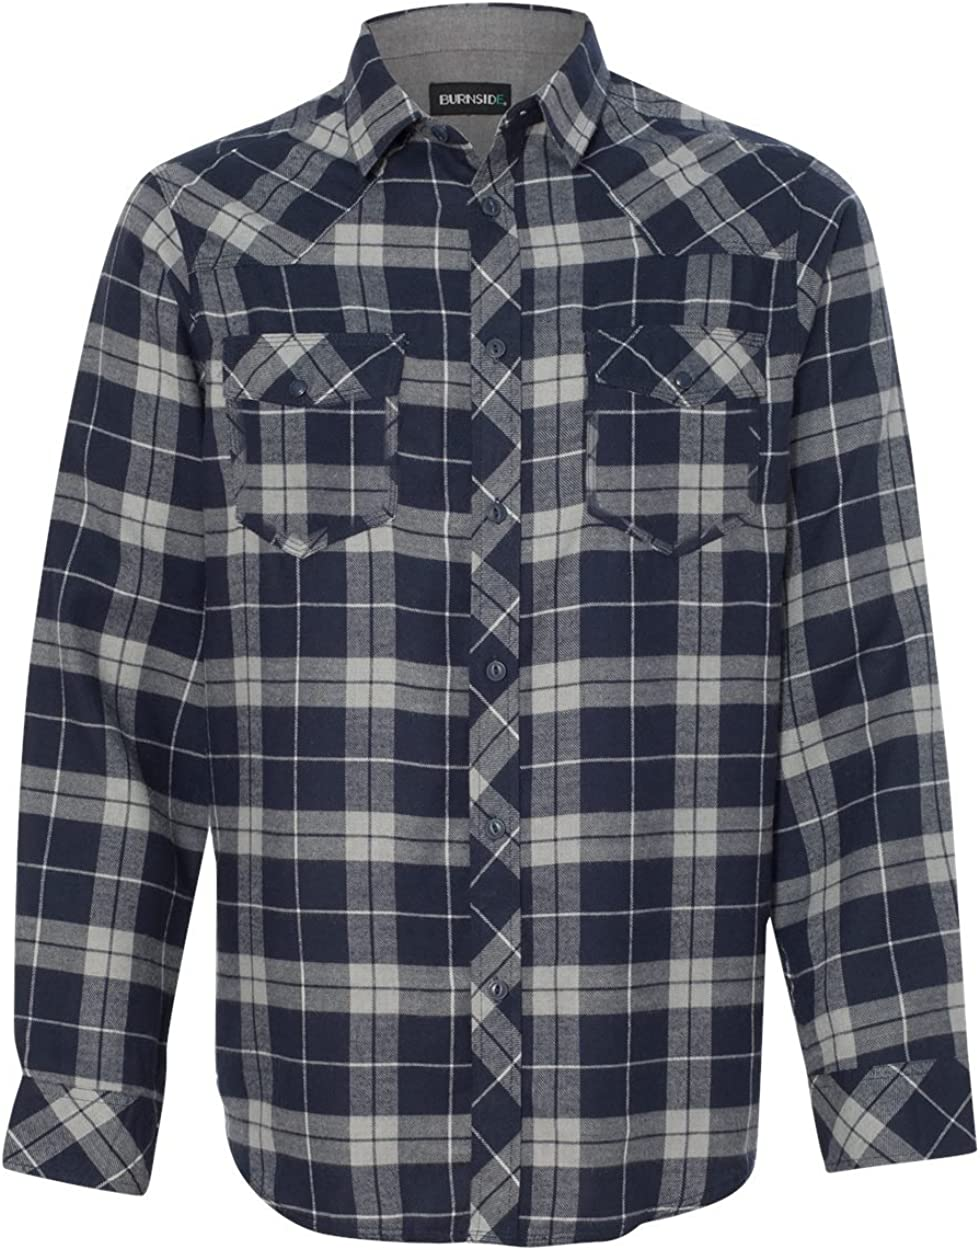 Burnside Men's Yarn-Dyed Long Sleeve Flannel Shirt